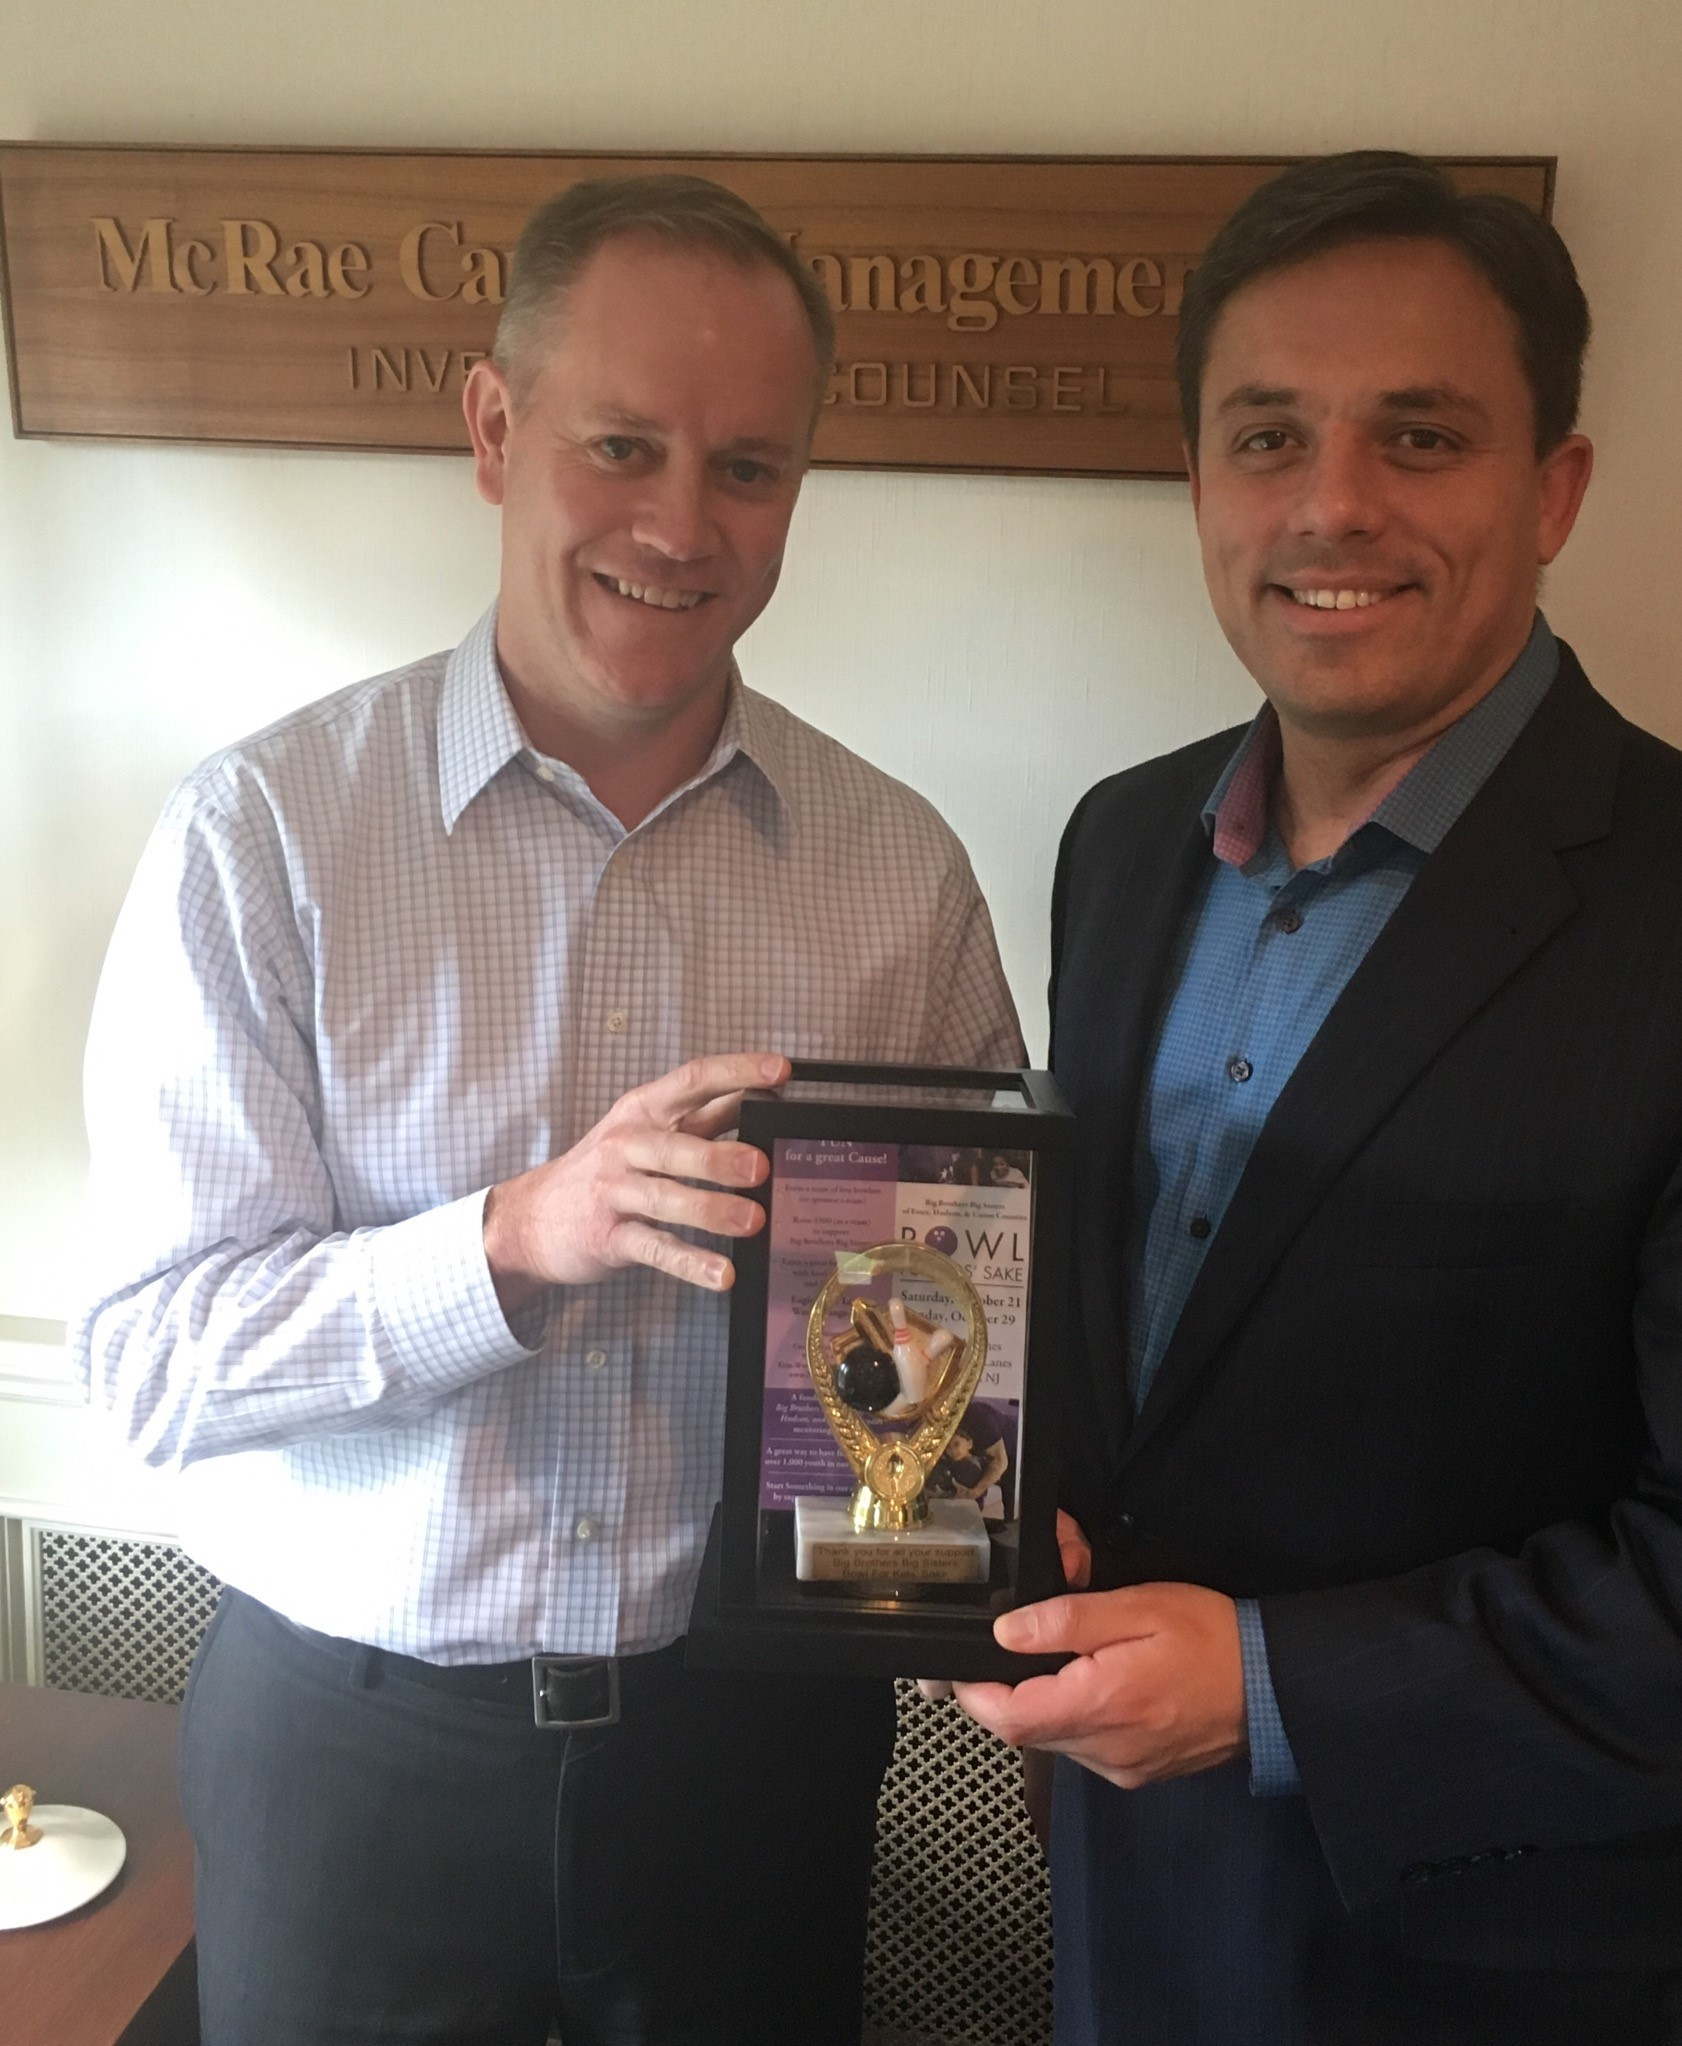 Peter McRae of McRae Capital Management is given a bowling trophy by BBBS regional CEO Carlos Lejnieks to recognize McRae's longtime support of Big Brothers Big Sisters of New Jersey (BBBS) at the Bowl For Kids Sake (BFKS) event in 2017.